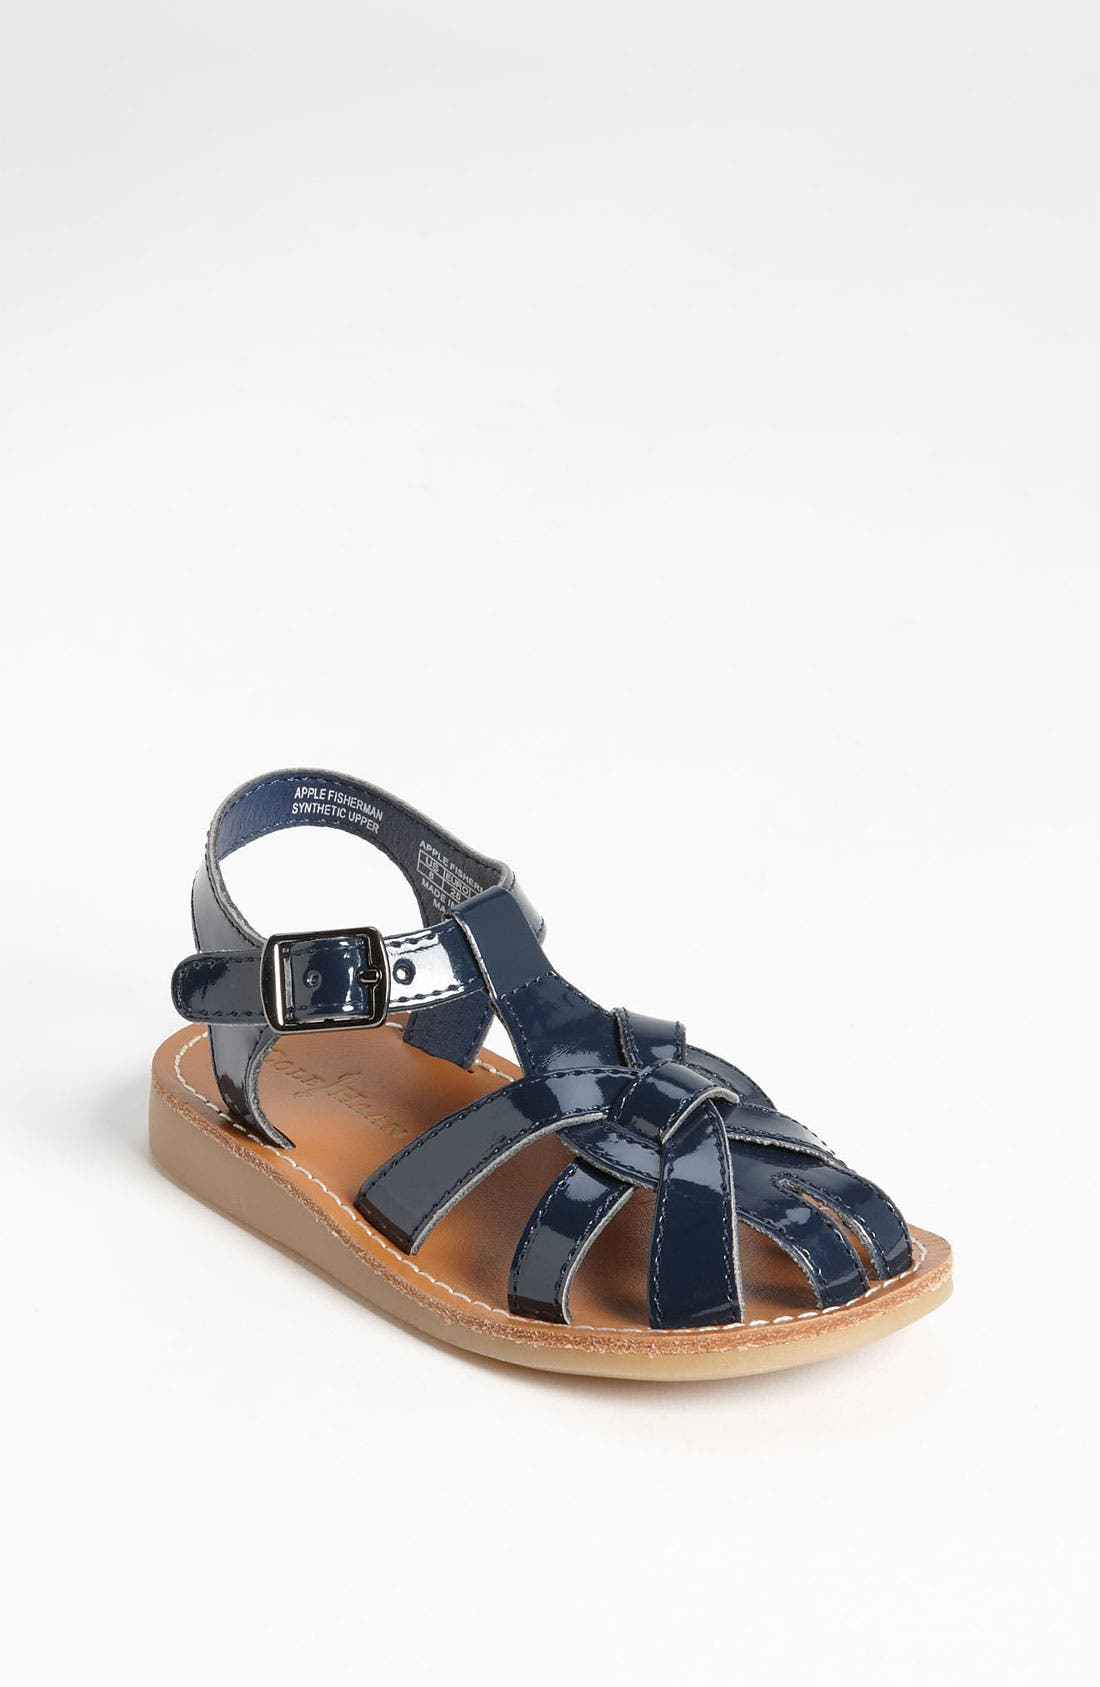 Alternate Image 1 Selected - Cole Haan 'Apple' Fisherman Sandal (Walker & Toddler)